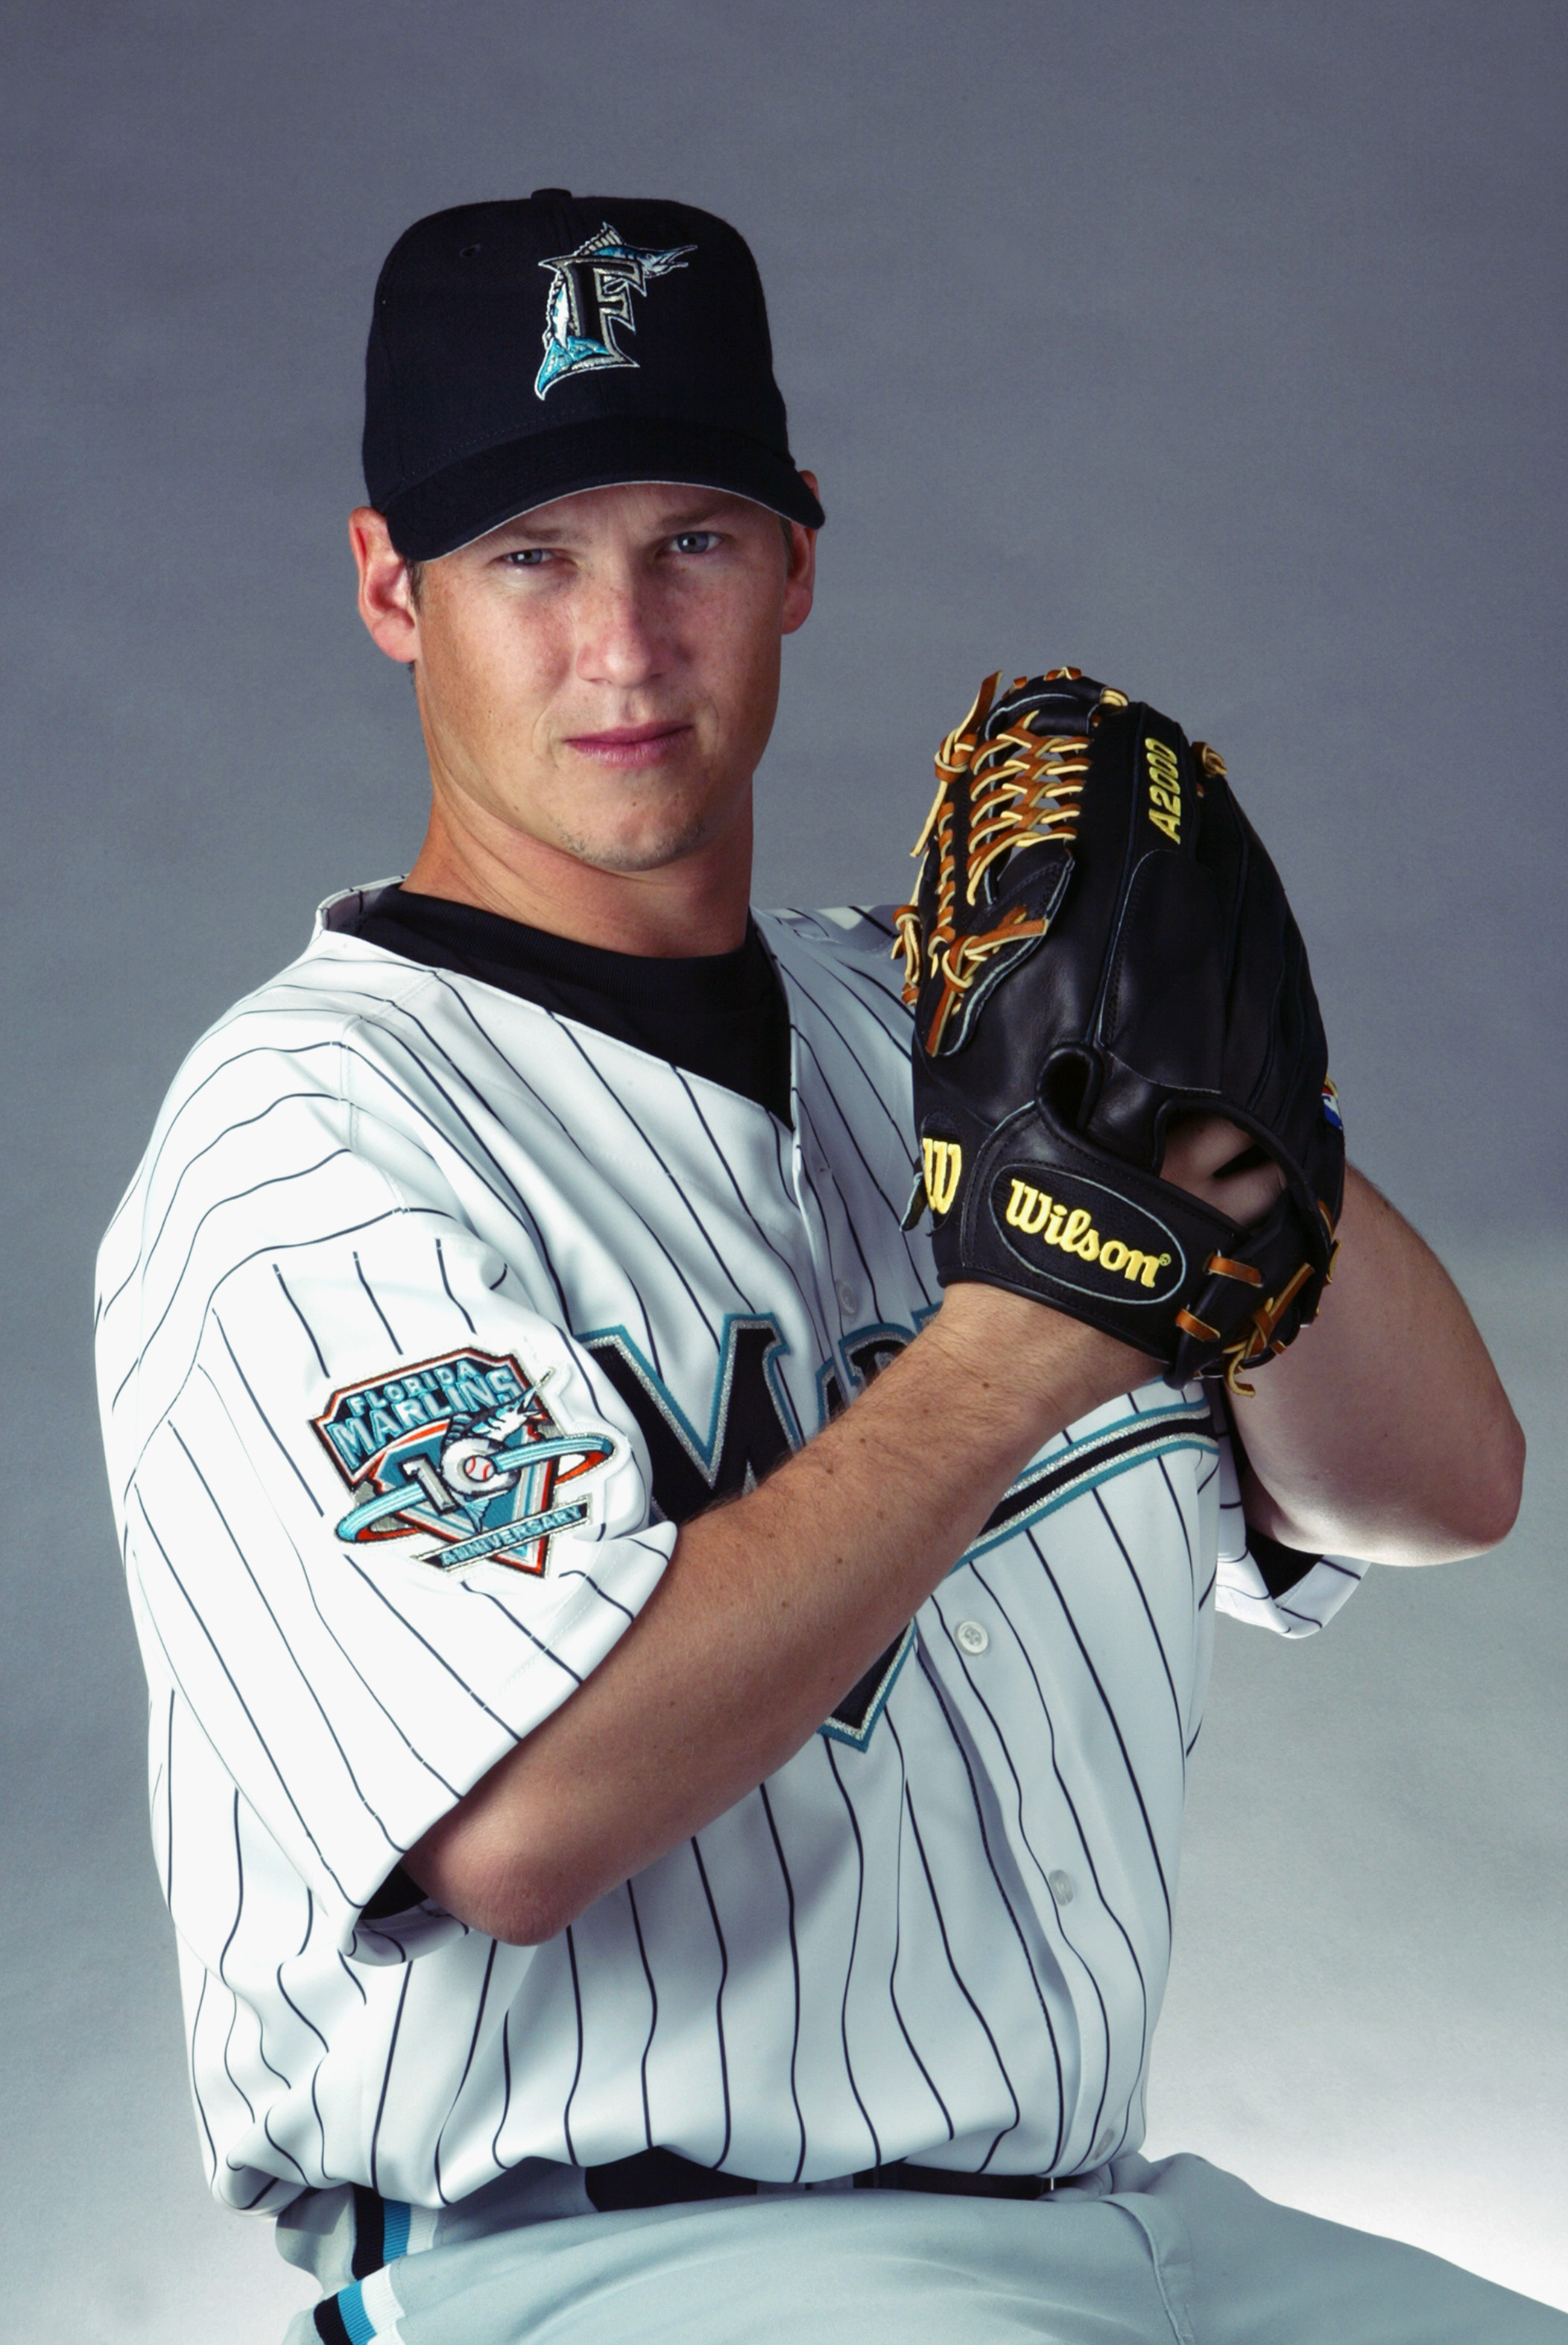 JUPITER, FL - FEBRUARY 22:  Geoff Goetz # 59 of the Florida Marlins during picture day at Spring Training  on February 22, 2003 at Roger Dean Stadium in Jupiter Florida. (Photo By Eliot J. Schechter/Getty Images)